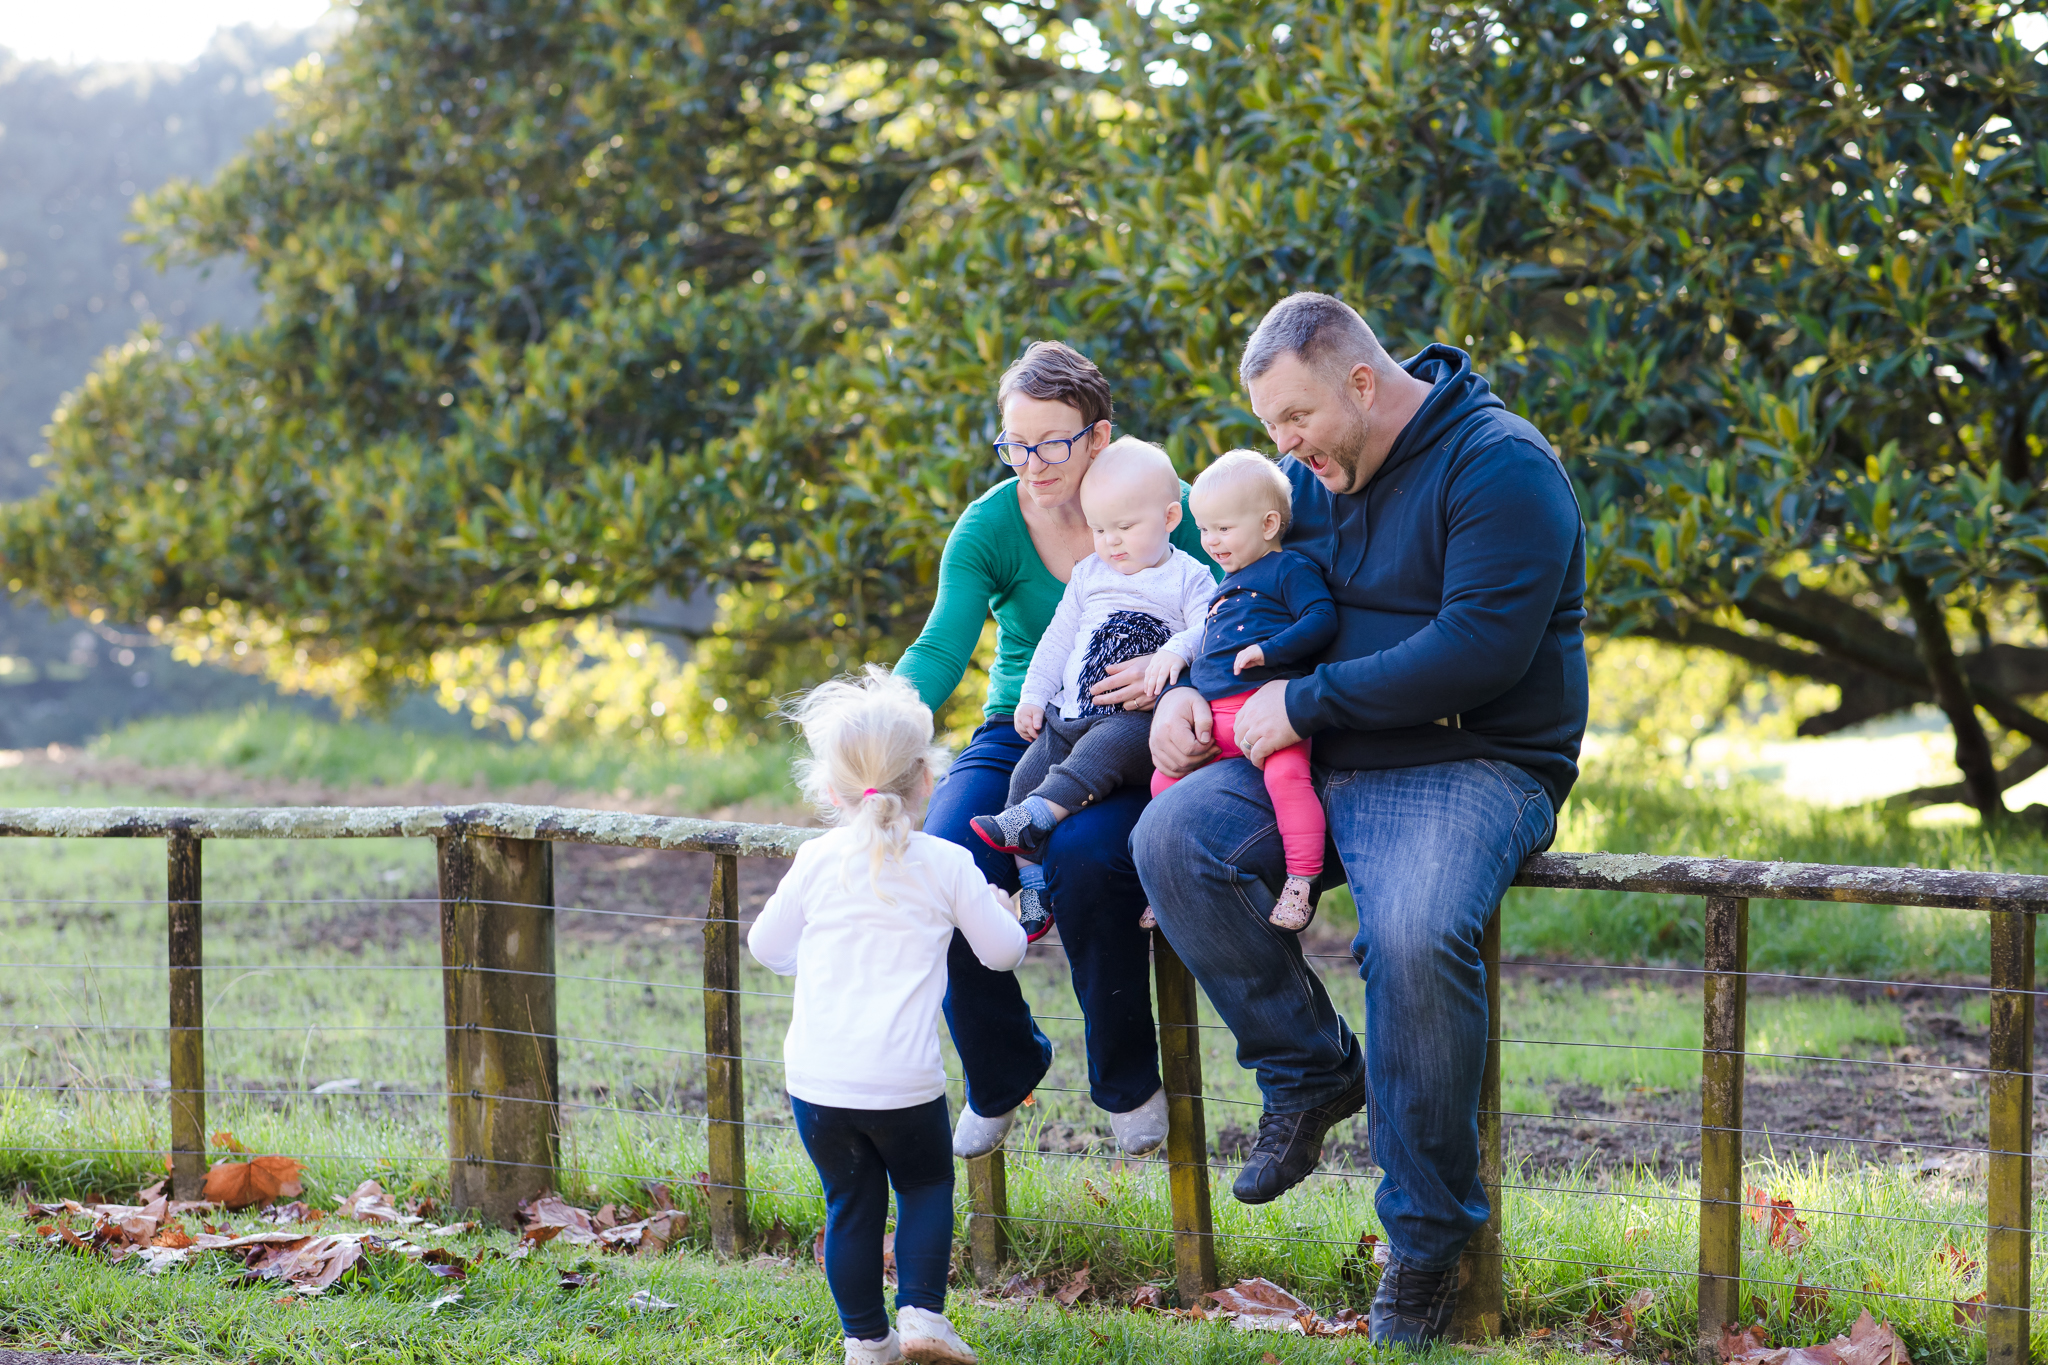 Family of five on a fence at Cornwall Park, Auckland by Janine Fox photography